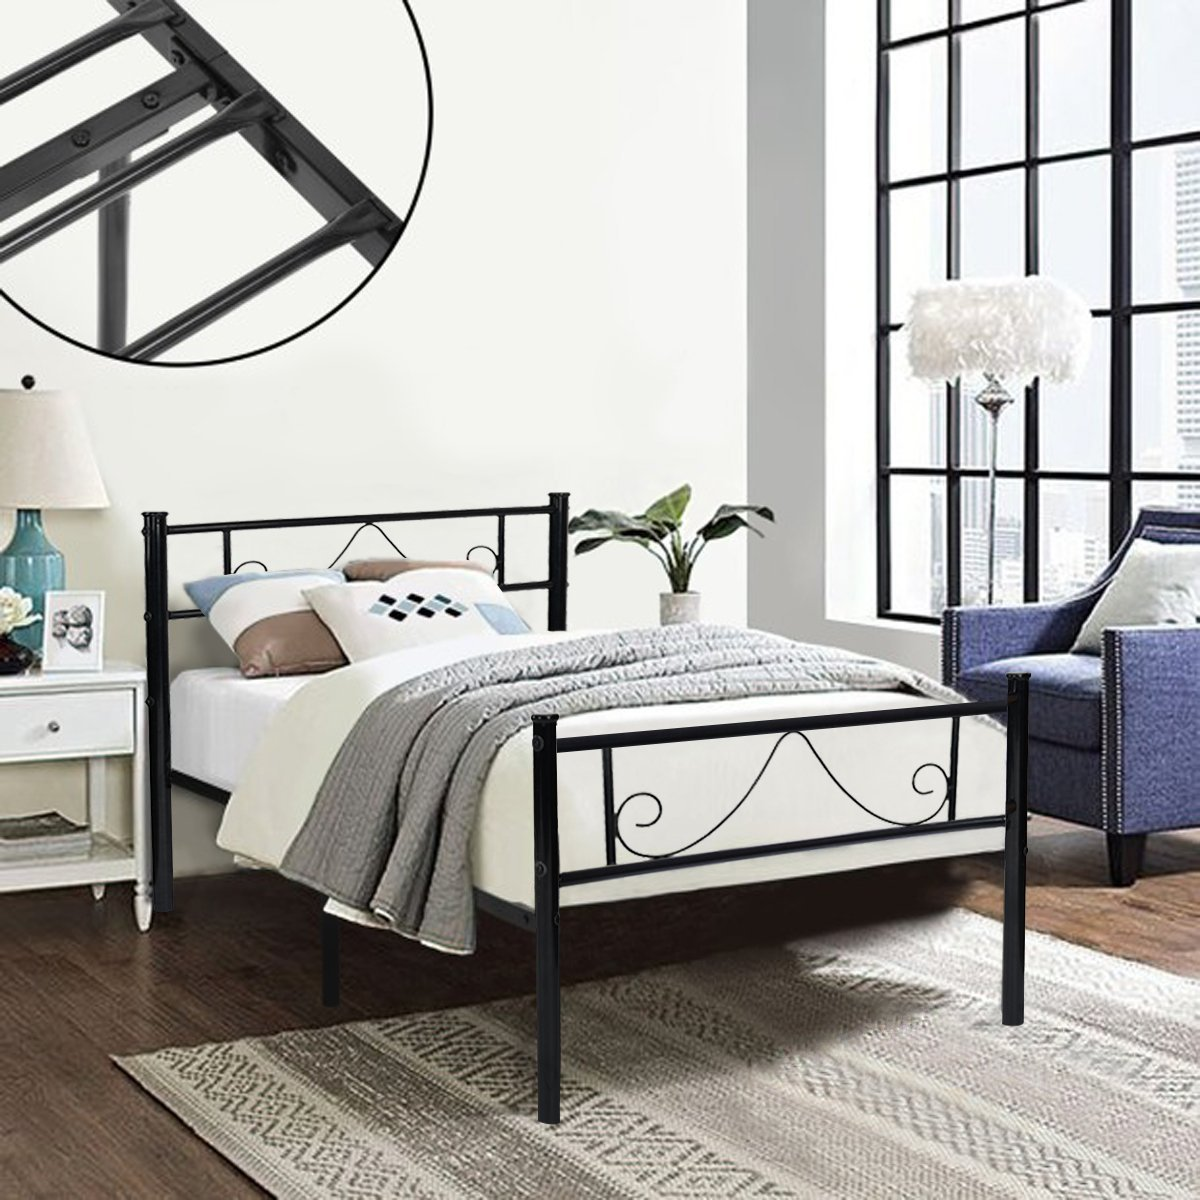 GreenForest Twin Bed Frame Metal Platform with Stable Metal Slats Stable Headboard and Footboard/Black,Twin by GreenForest